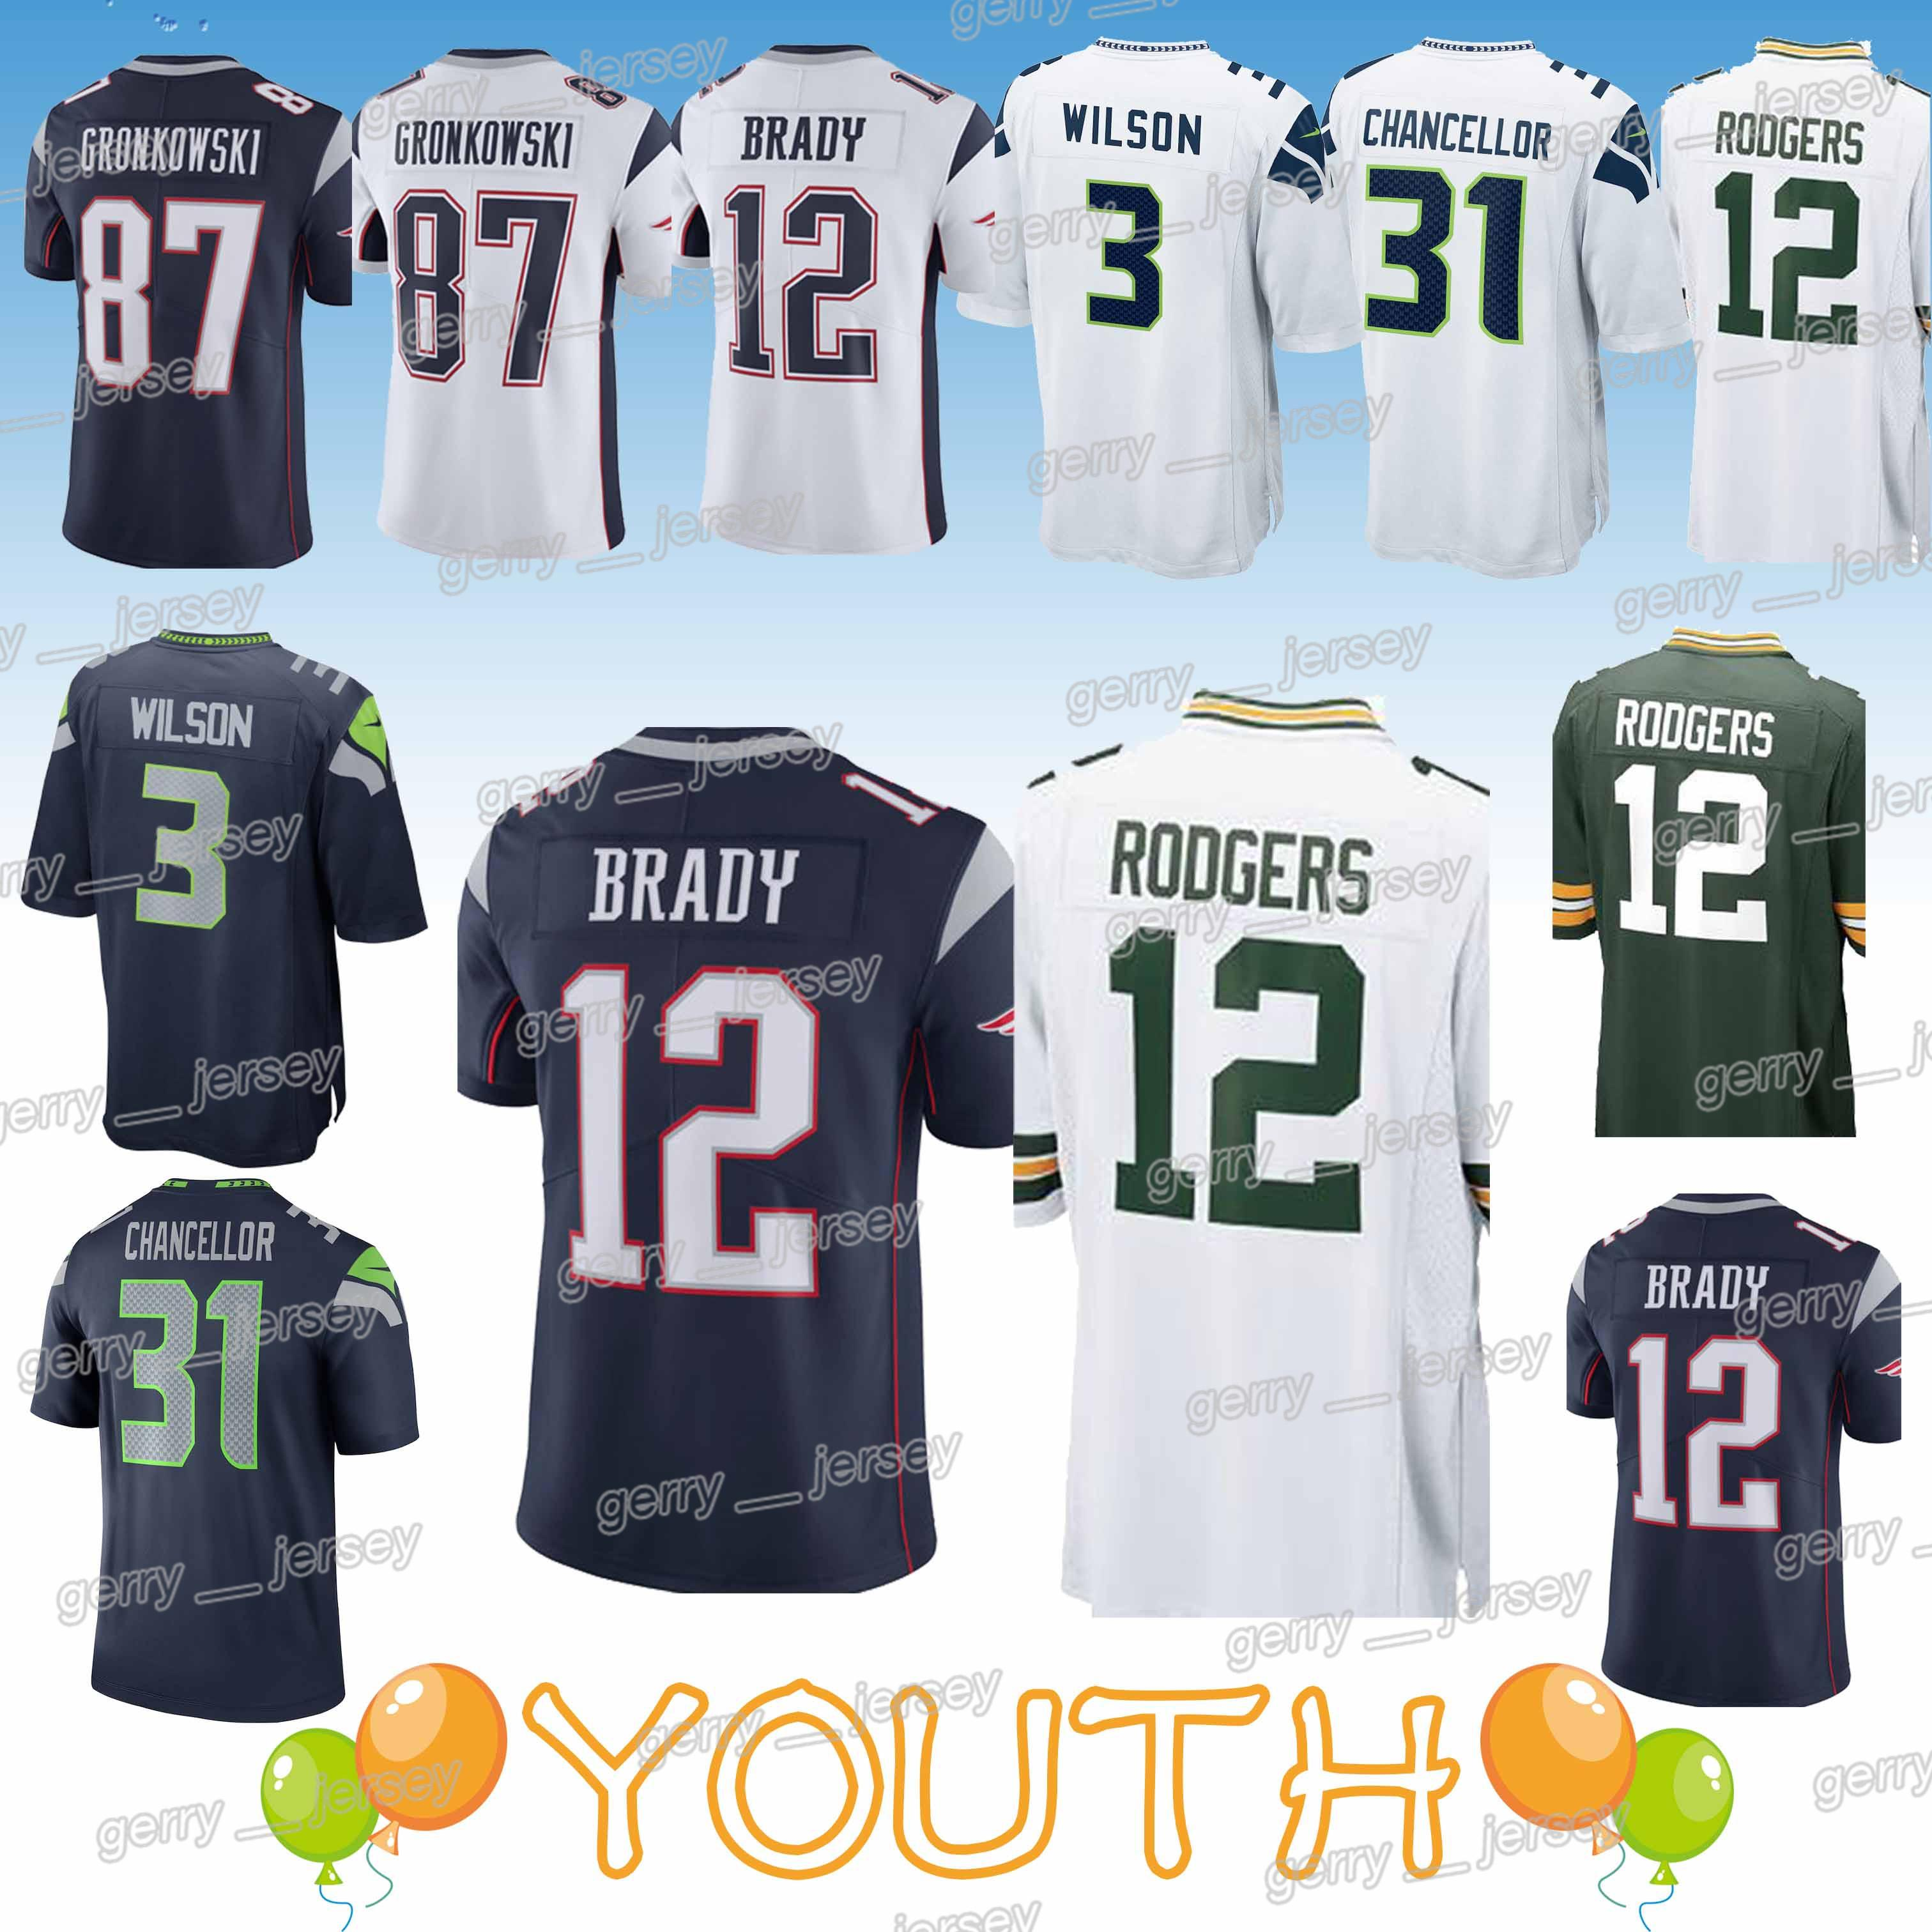 d5aa0a39 Kids 12 Tom Brady New Patriot Green Bays 33 Packer Seattle 22 Seahawk  Jerseys 12 Aaron Rodgers 3 Russell Wilson new jersey YOUTH 2019